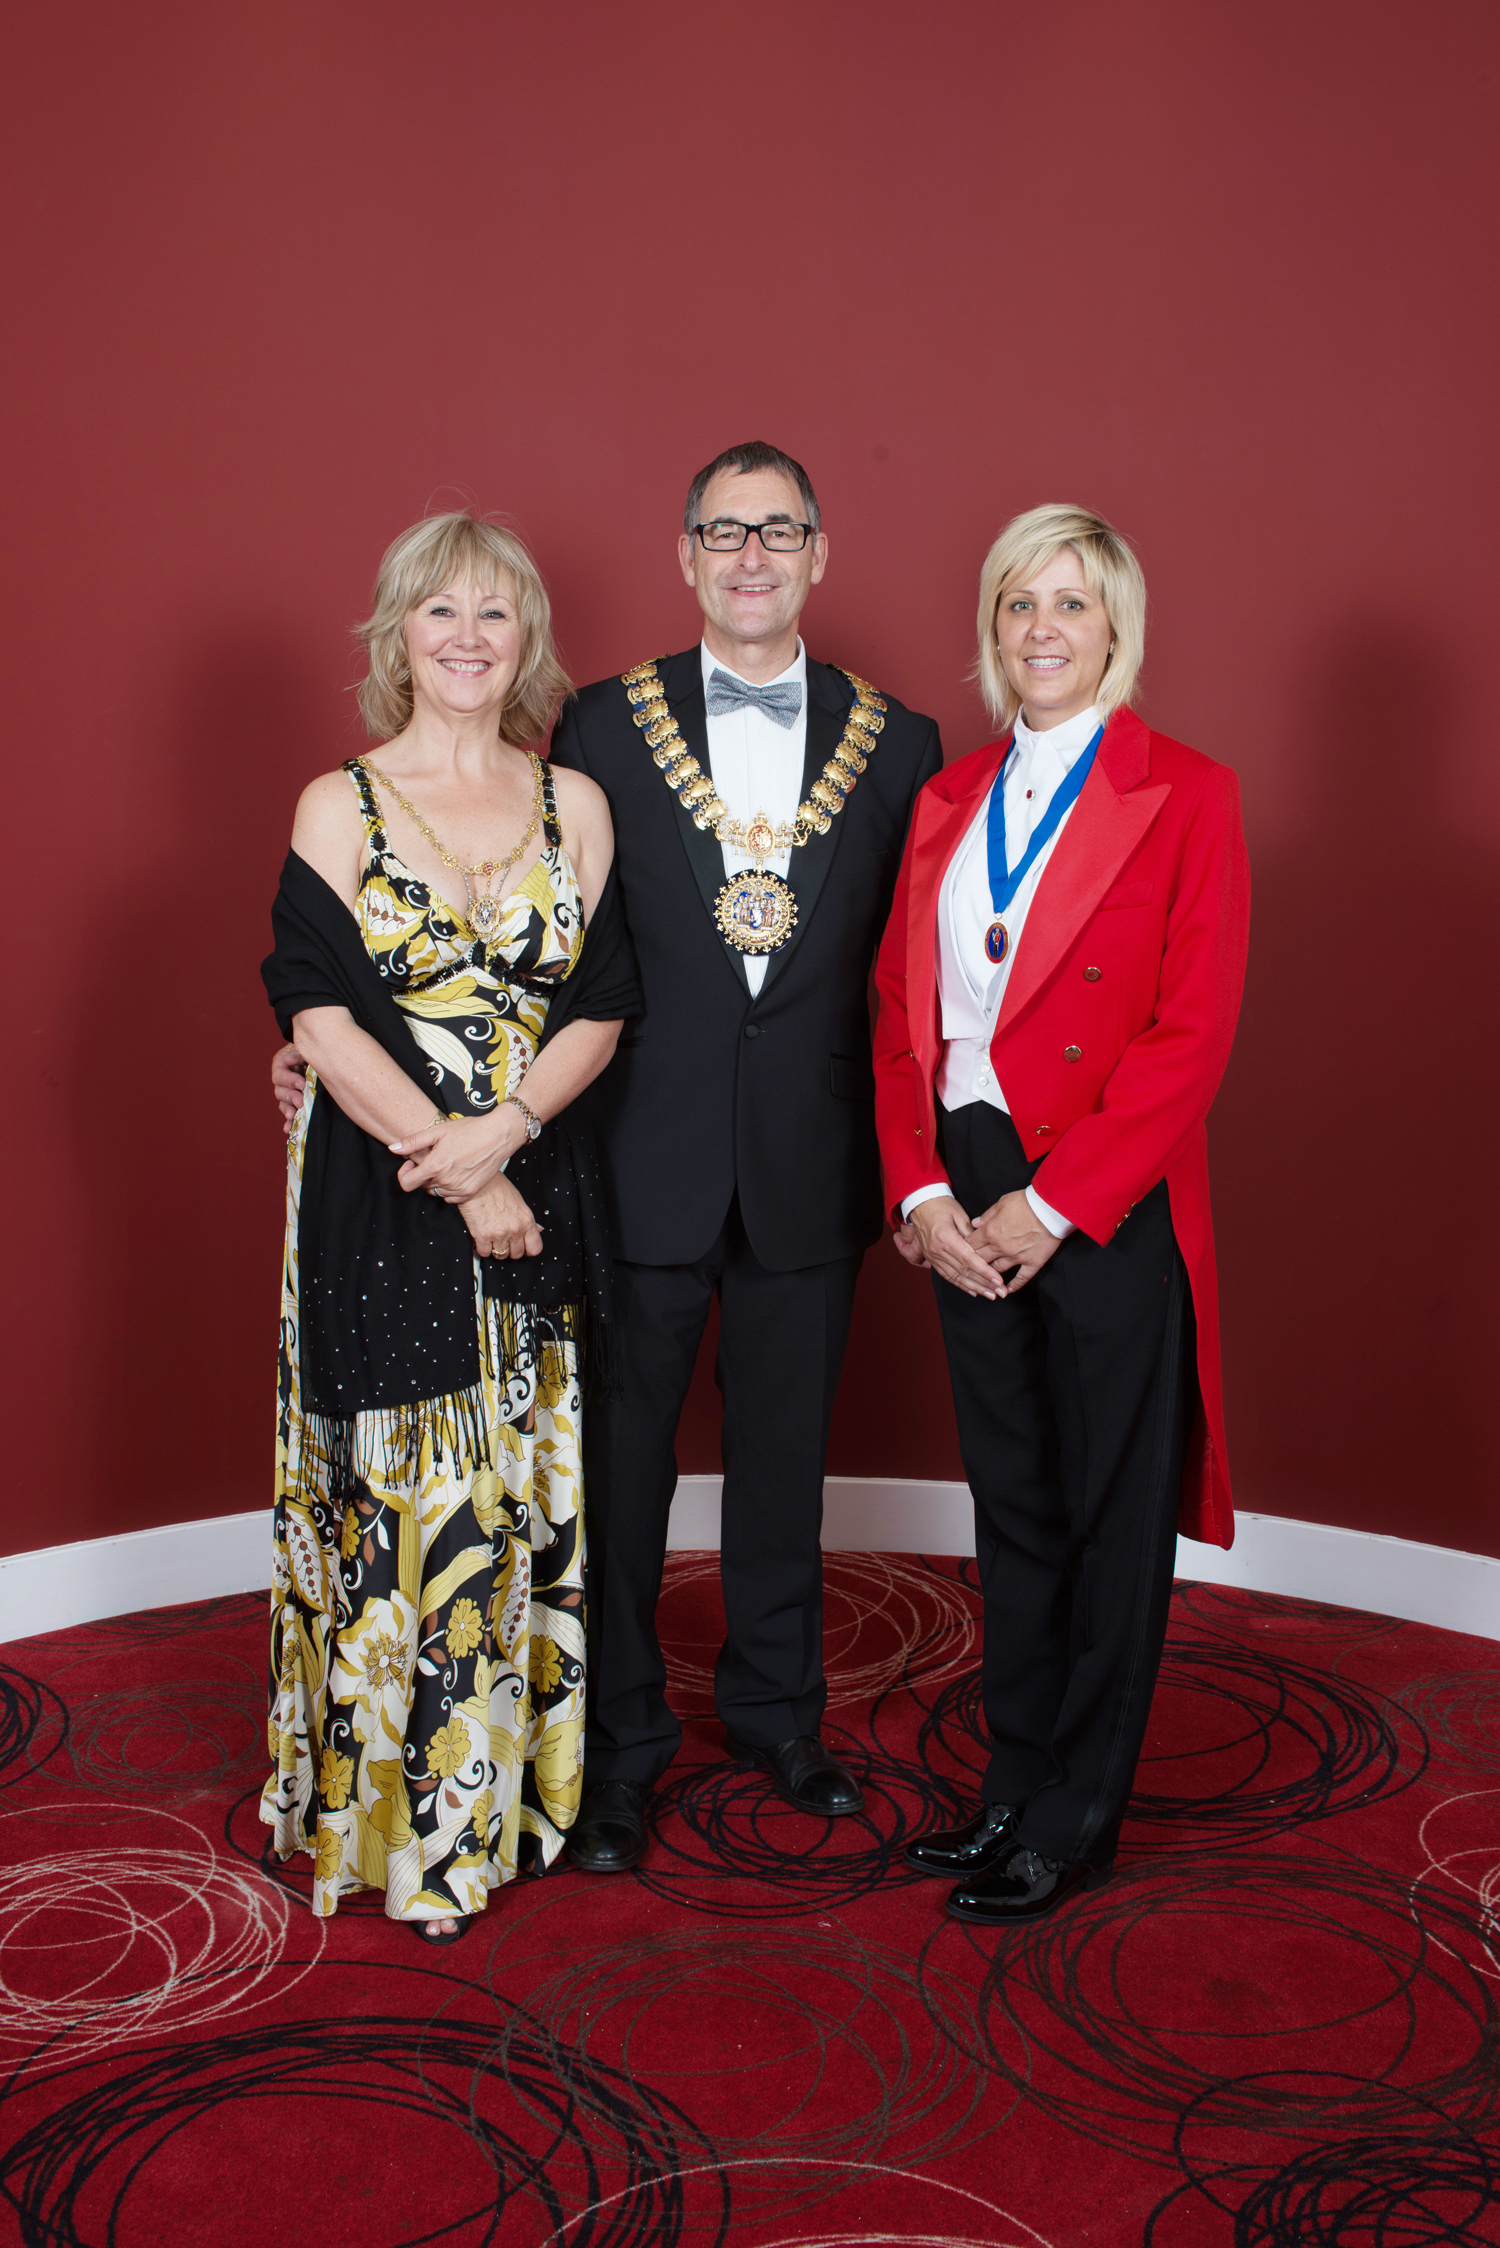 Sian with Mayor of Southend on Sea